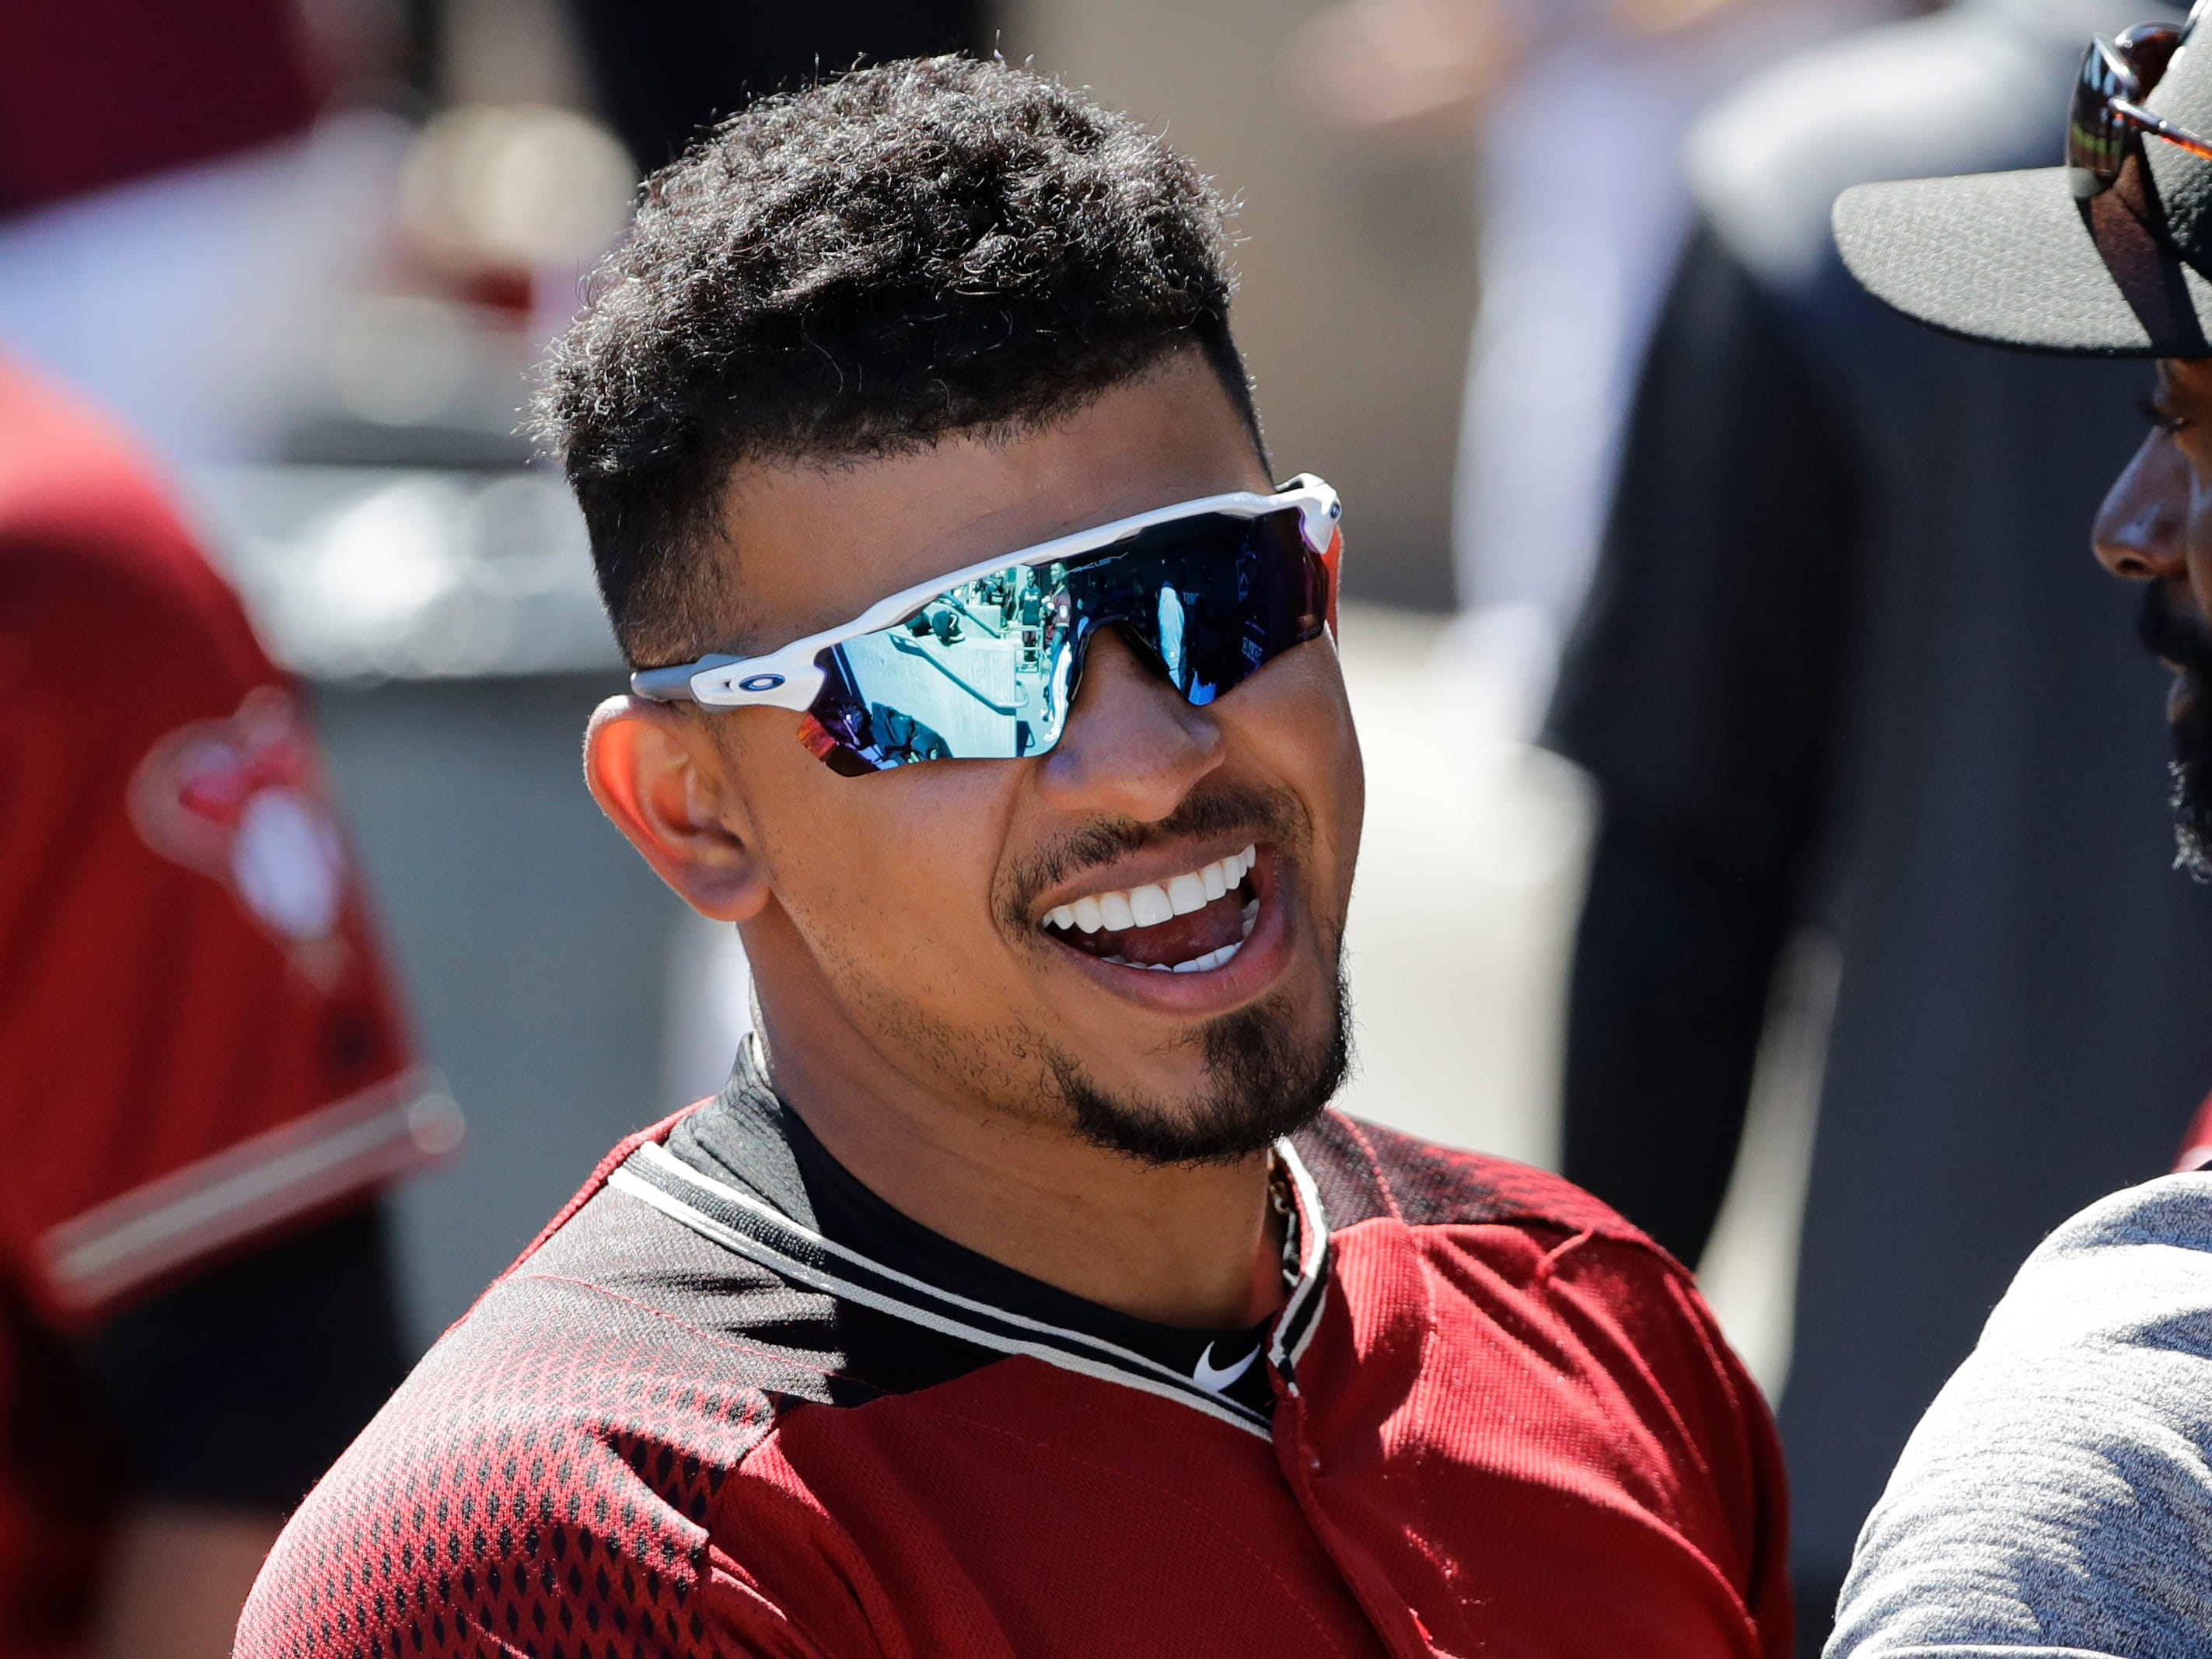 Arizona Diamondbacks' Eduardo Escobar smiles in the dugout before a spring training baseball game Thursday, March 14, 2019, in Scottsdale, Ariz.